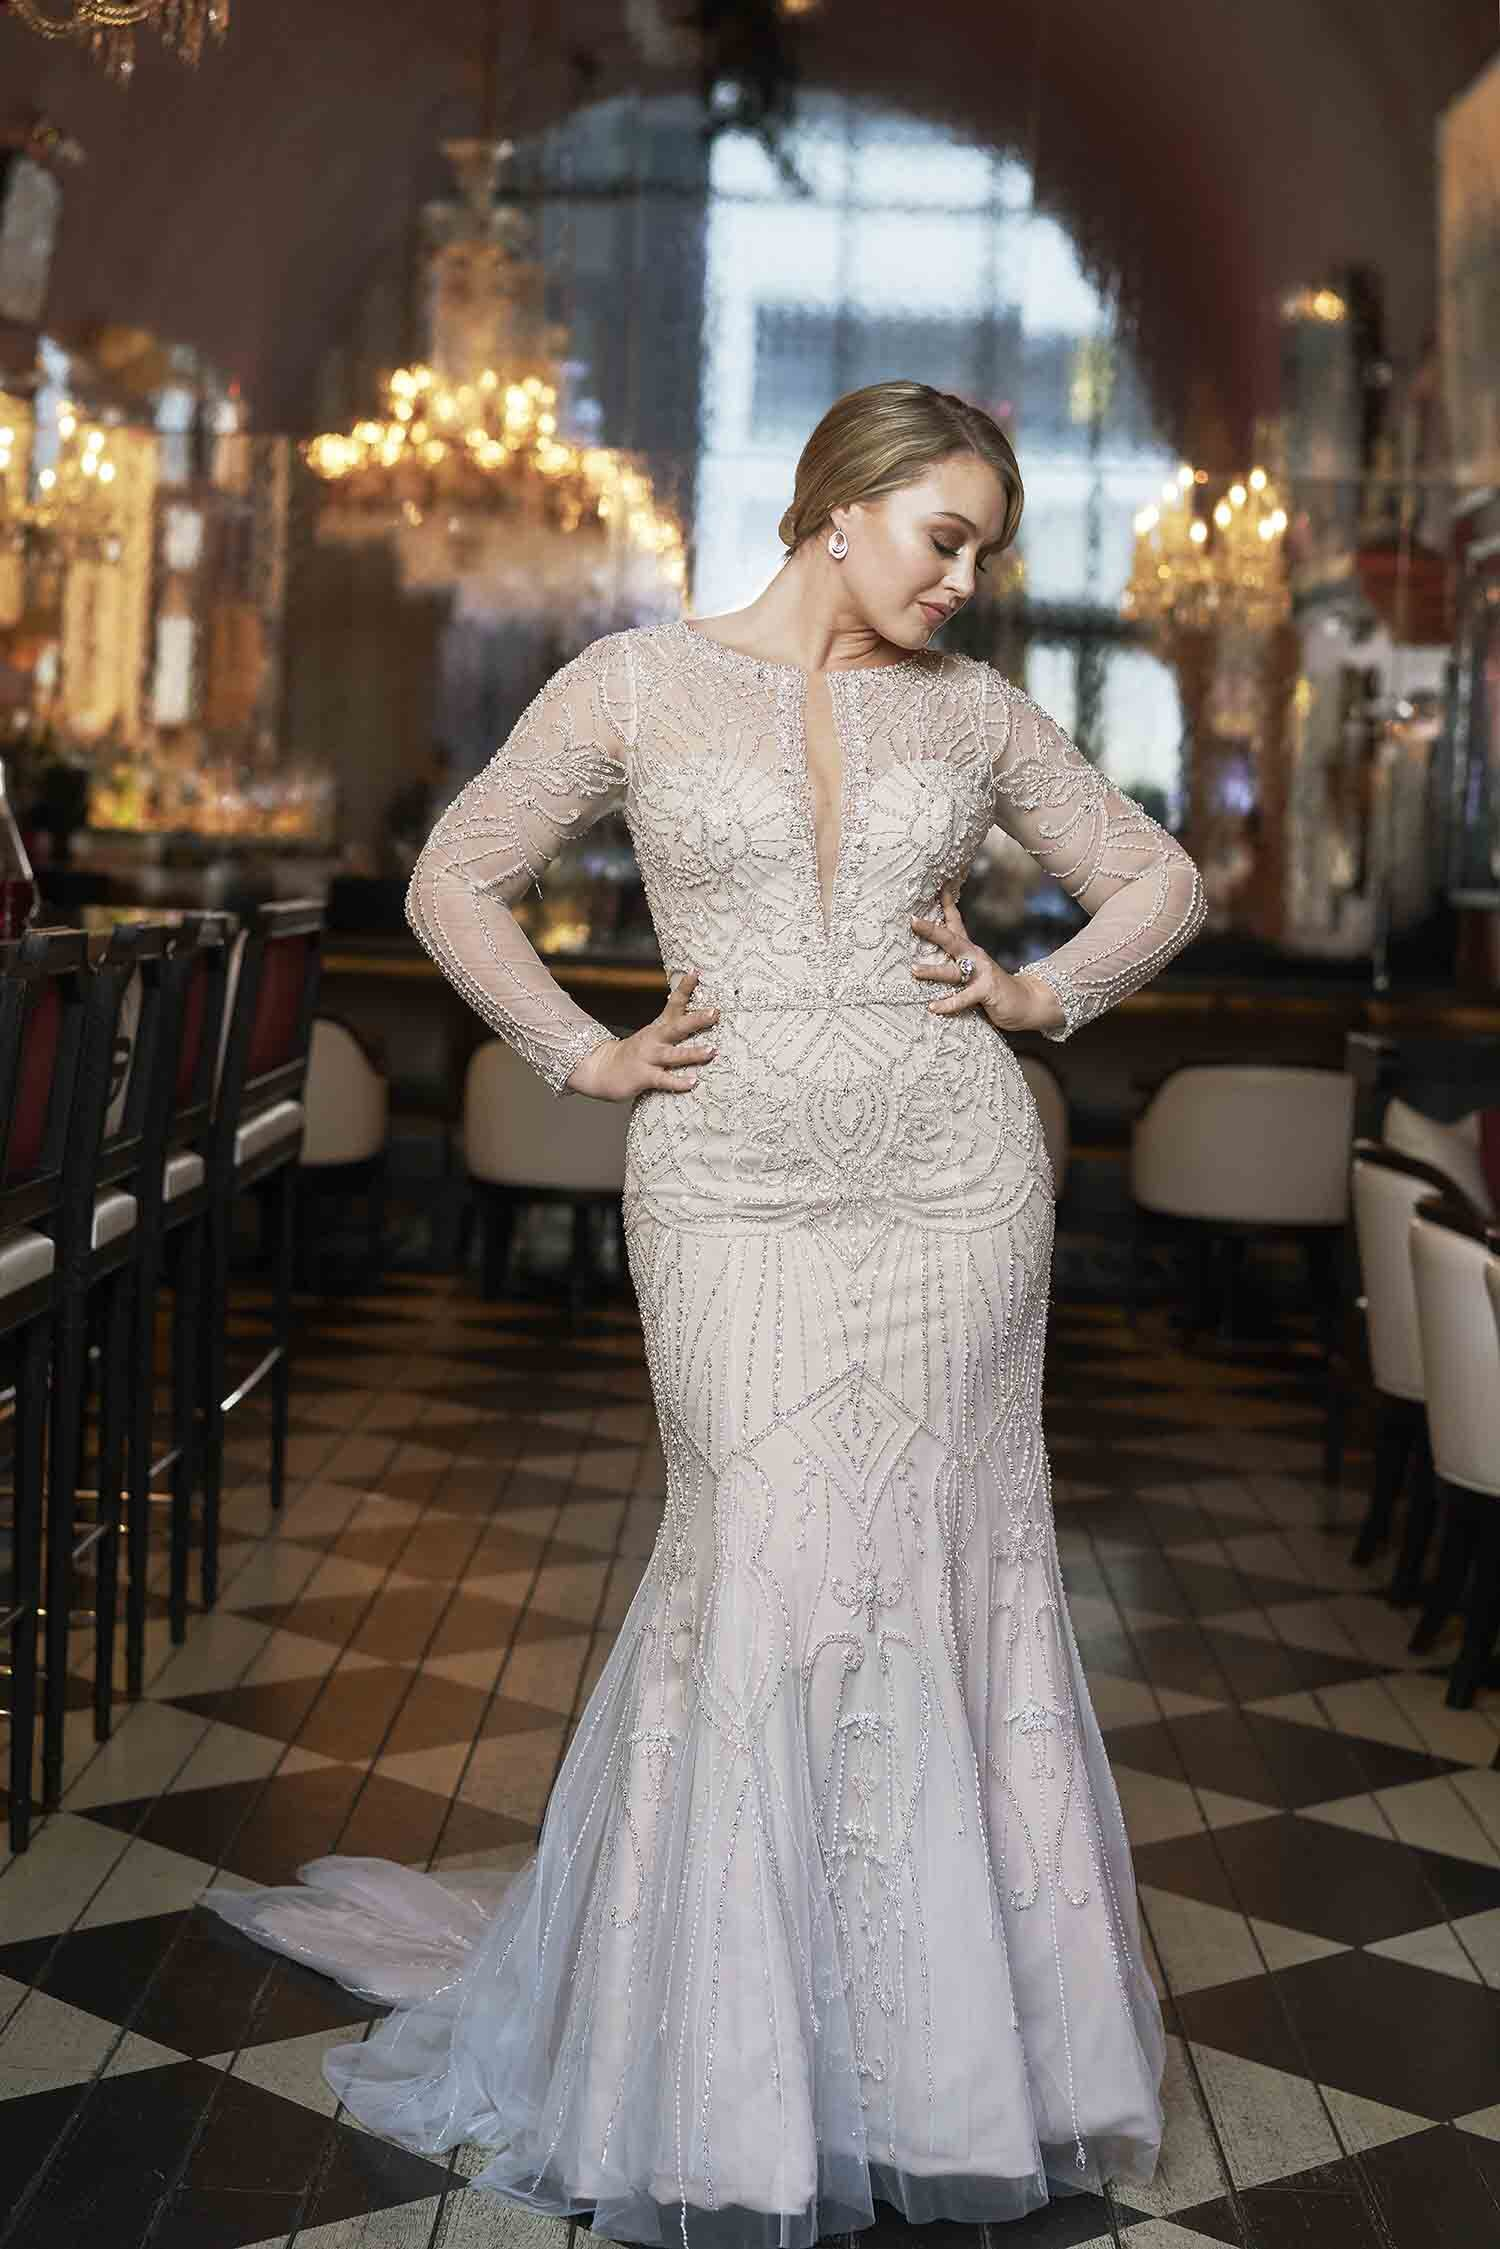 Plus Size Wedding Gowns With Sleeves Uptown Bride,Vintage Style Vintage Flattering Plus Size Wedding Dresses